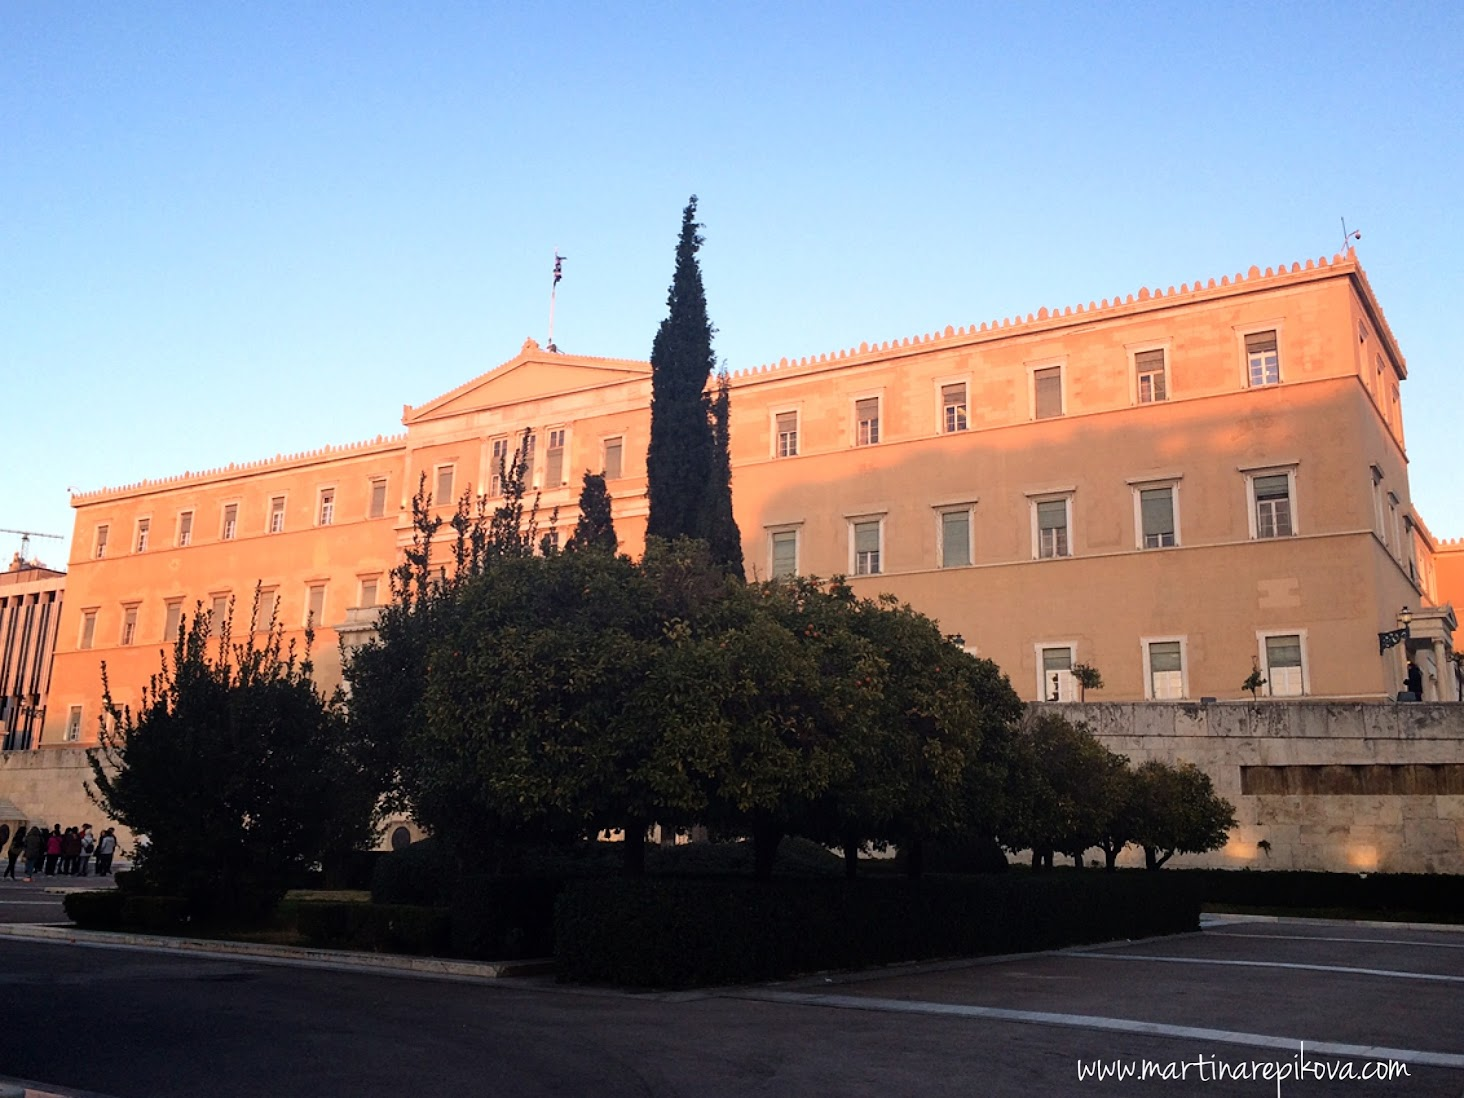 Parliament at Syntagma square, Athens, Greece